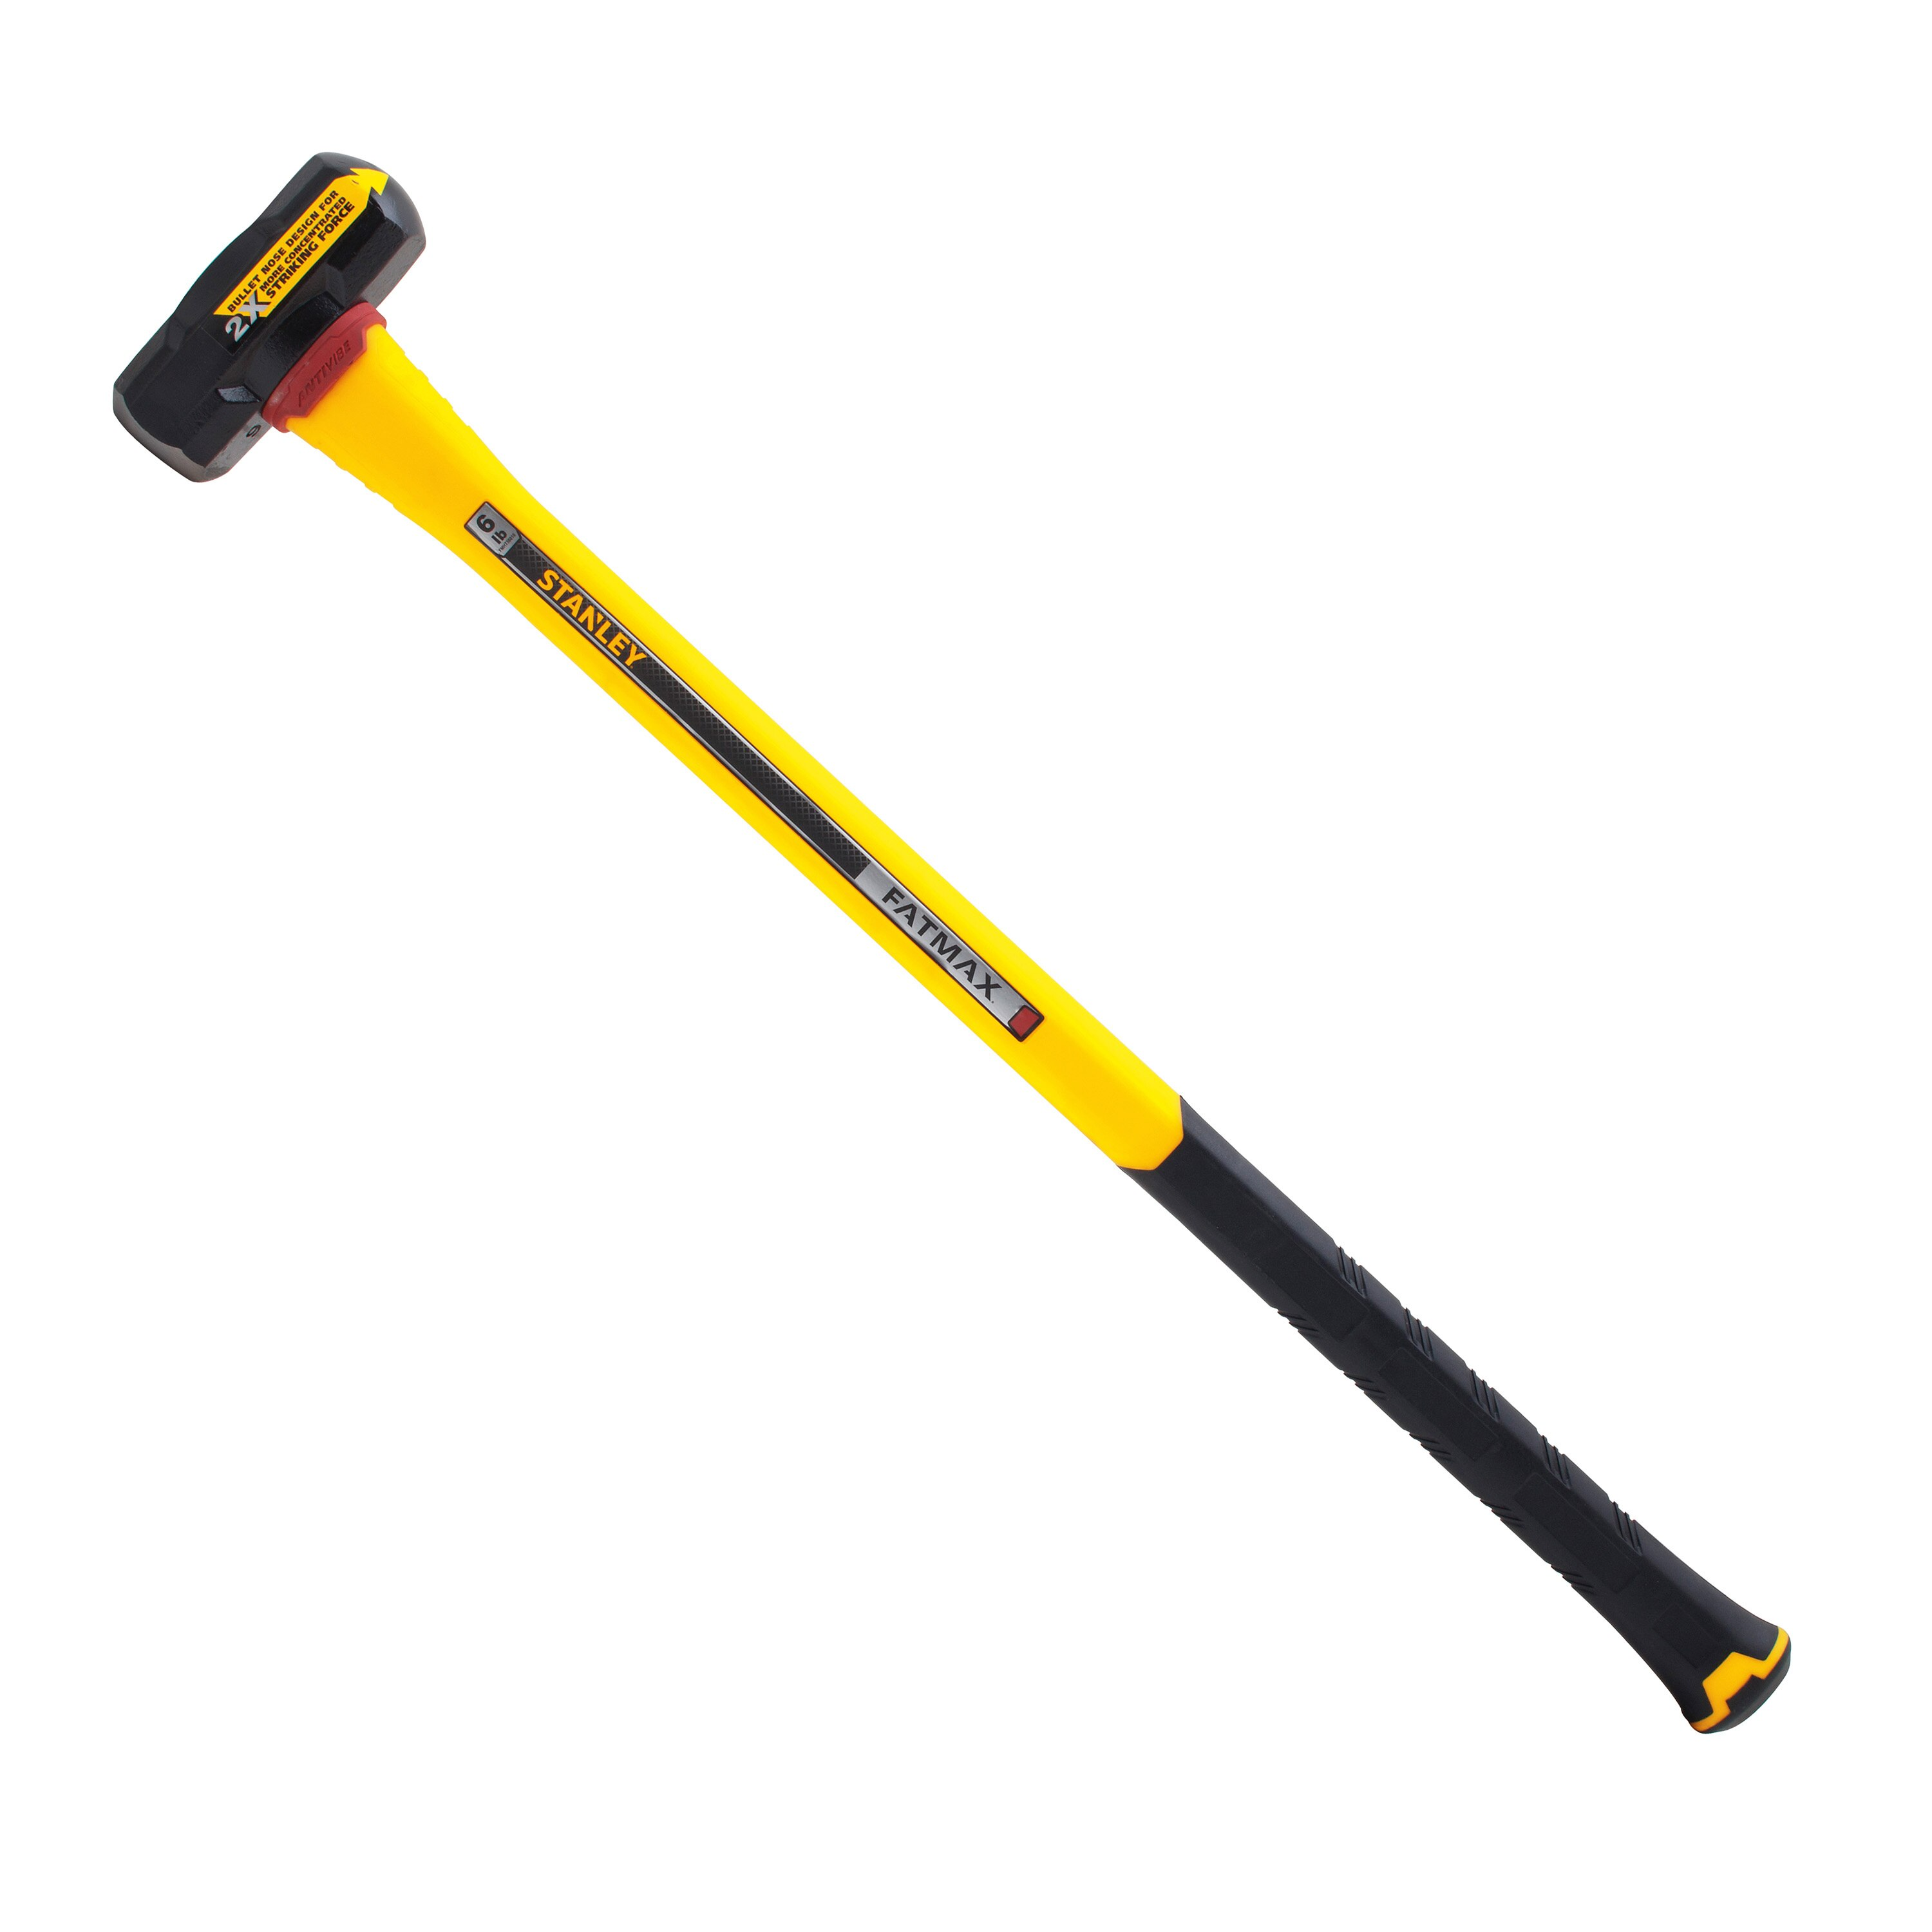 Stanley Tools - 6 lb AntiVibe Sledge Hammer - FMHT56010